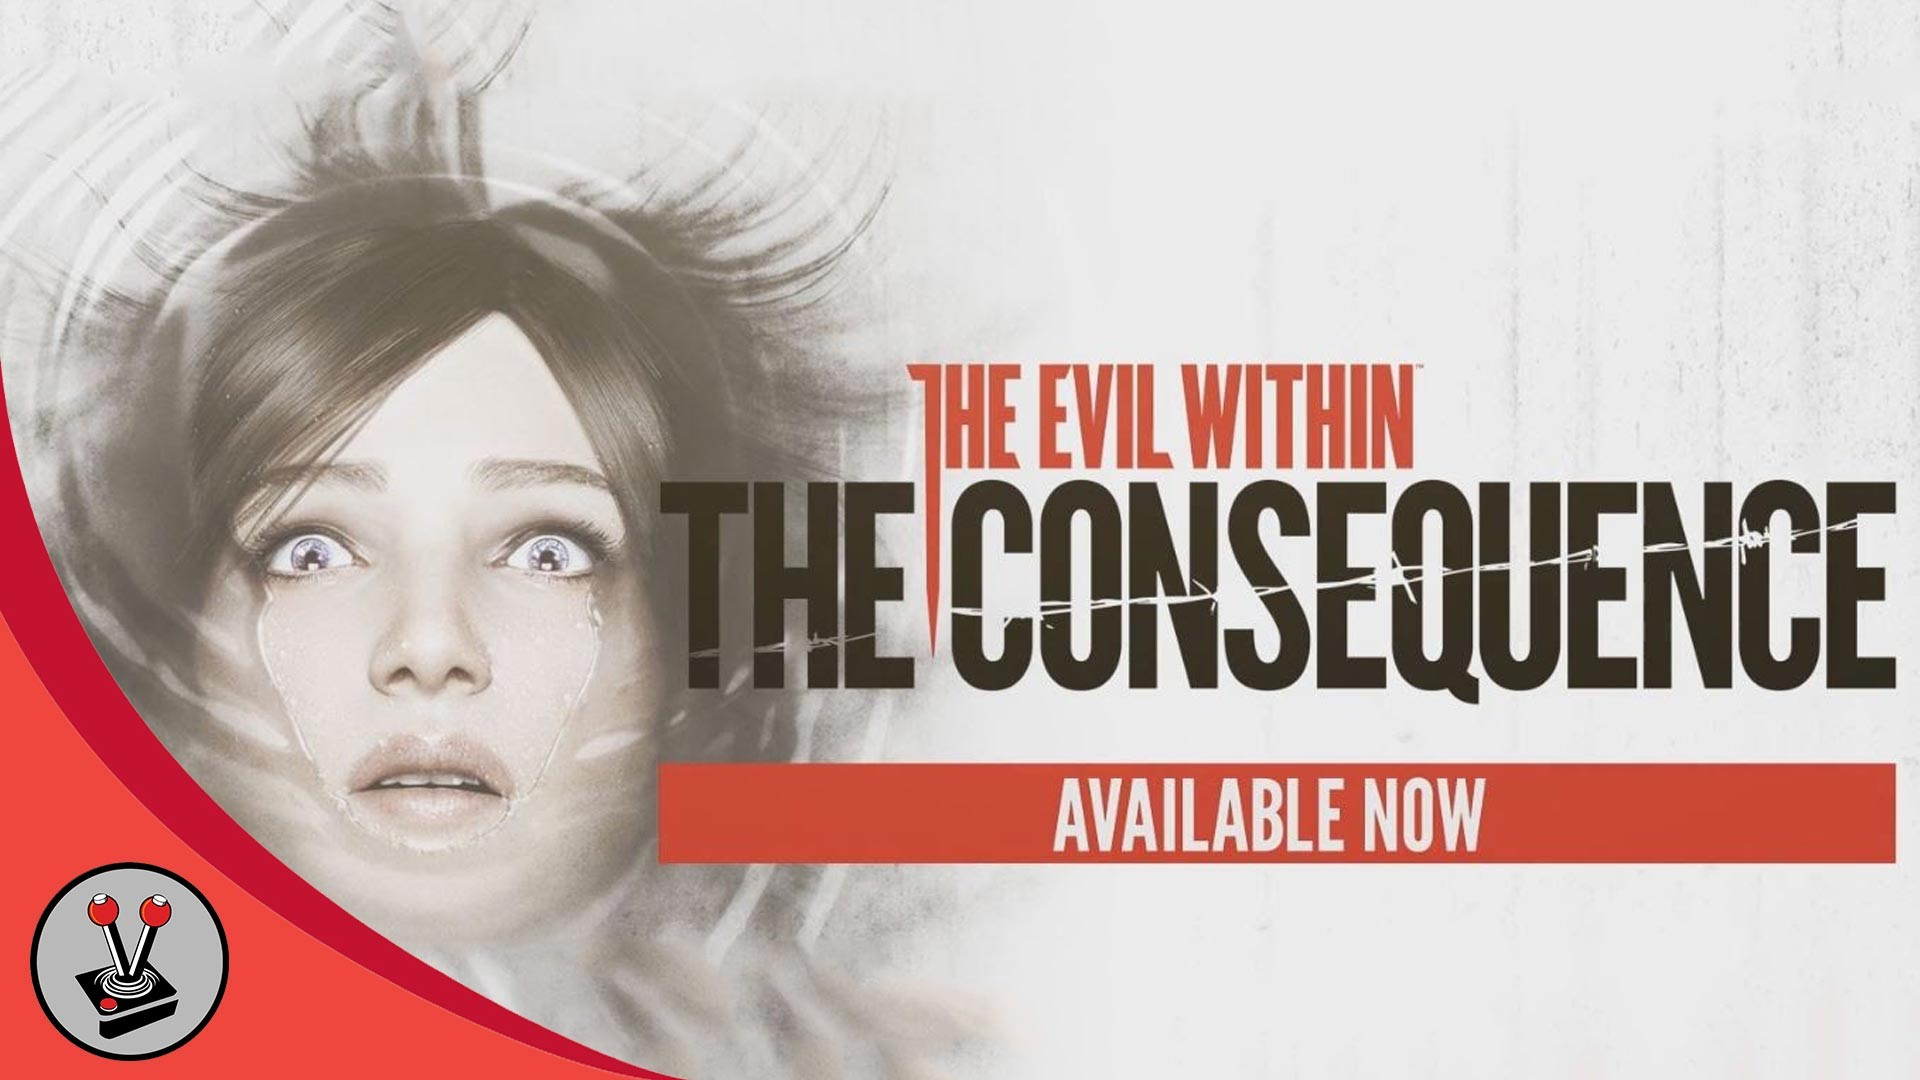 The Evil Within: The Consequence (DLC) is Now Available